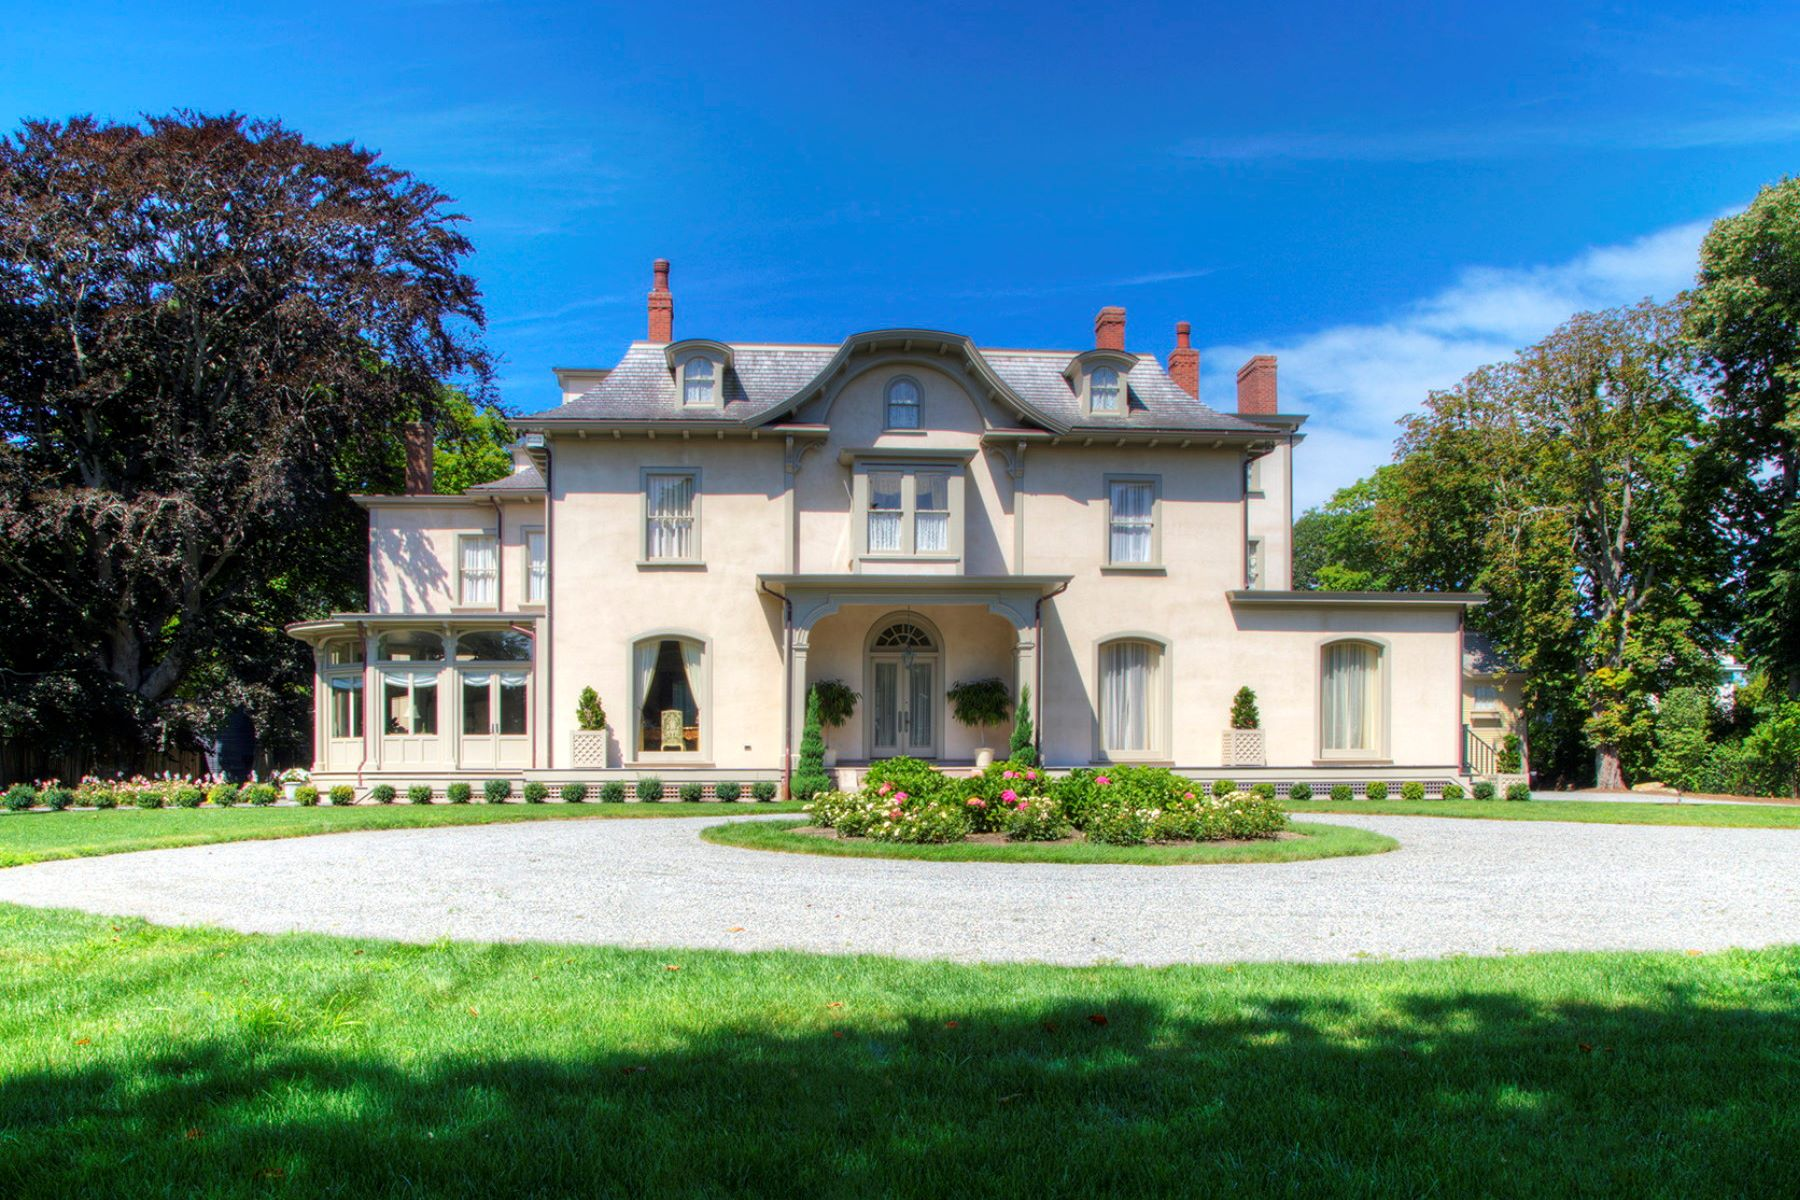 Single Family Home for Sale at Historic Quatrel on Bellevue 673 Bellevue Avenue, Newport, Rhode Island, 02840 United States